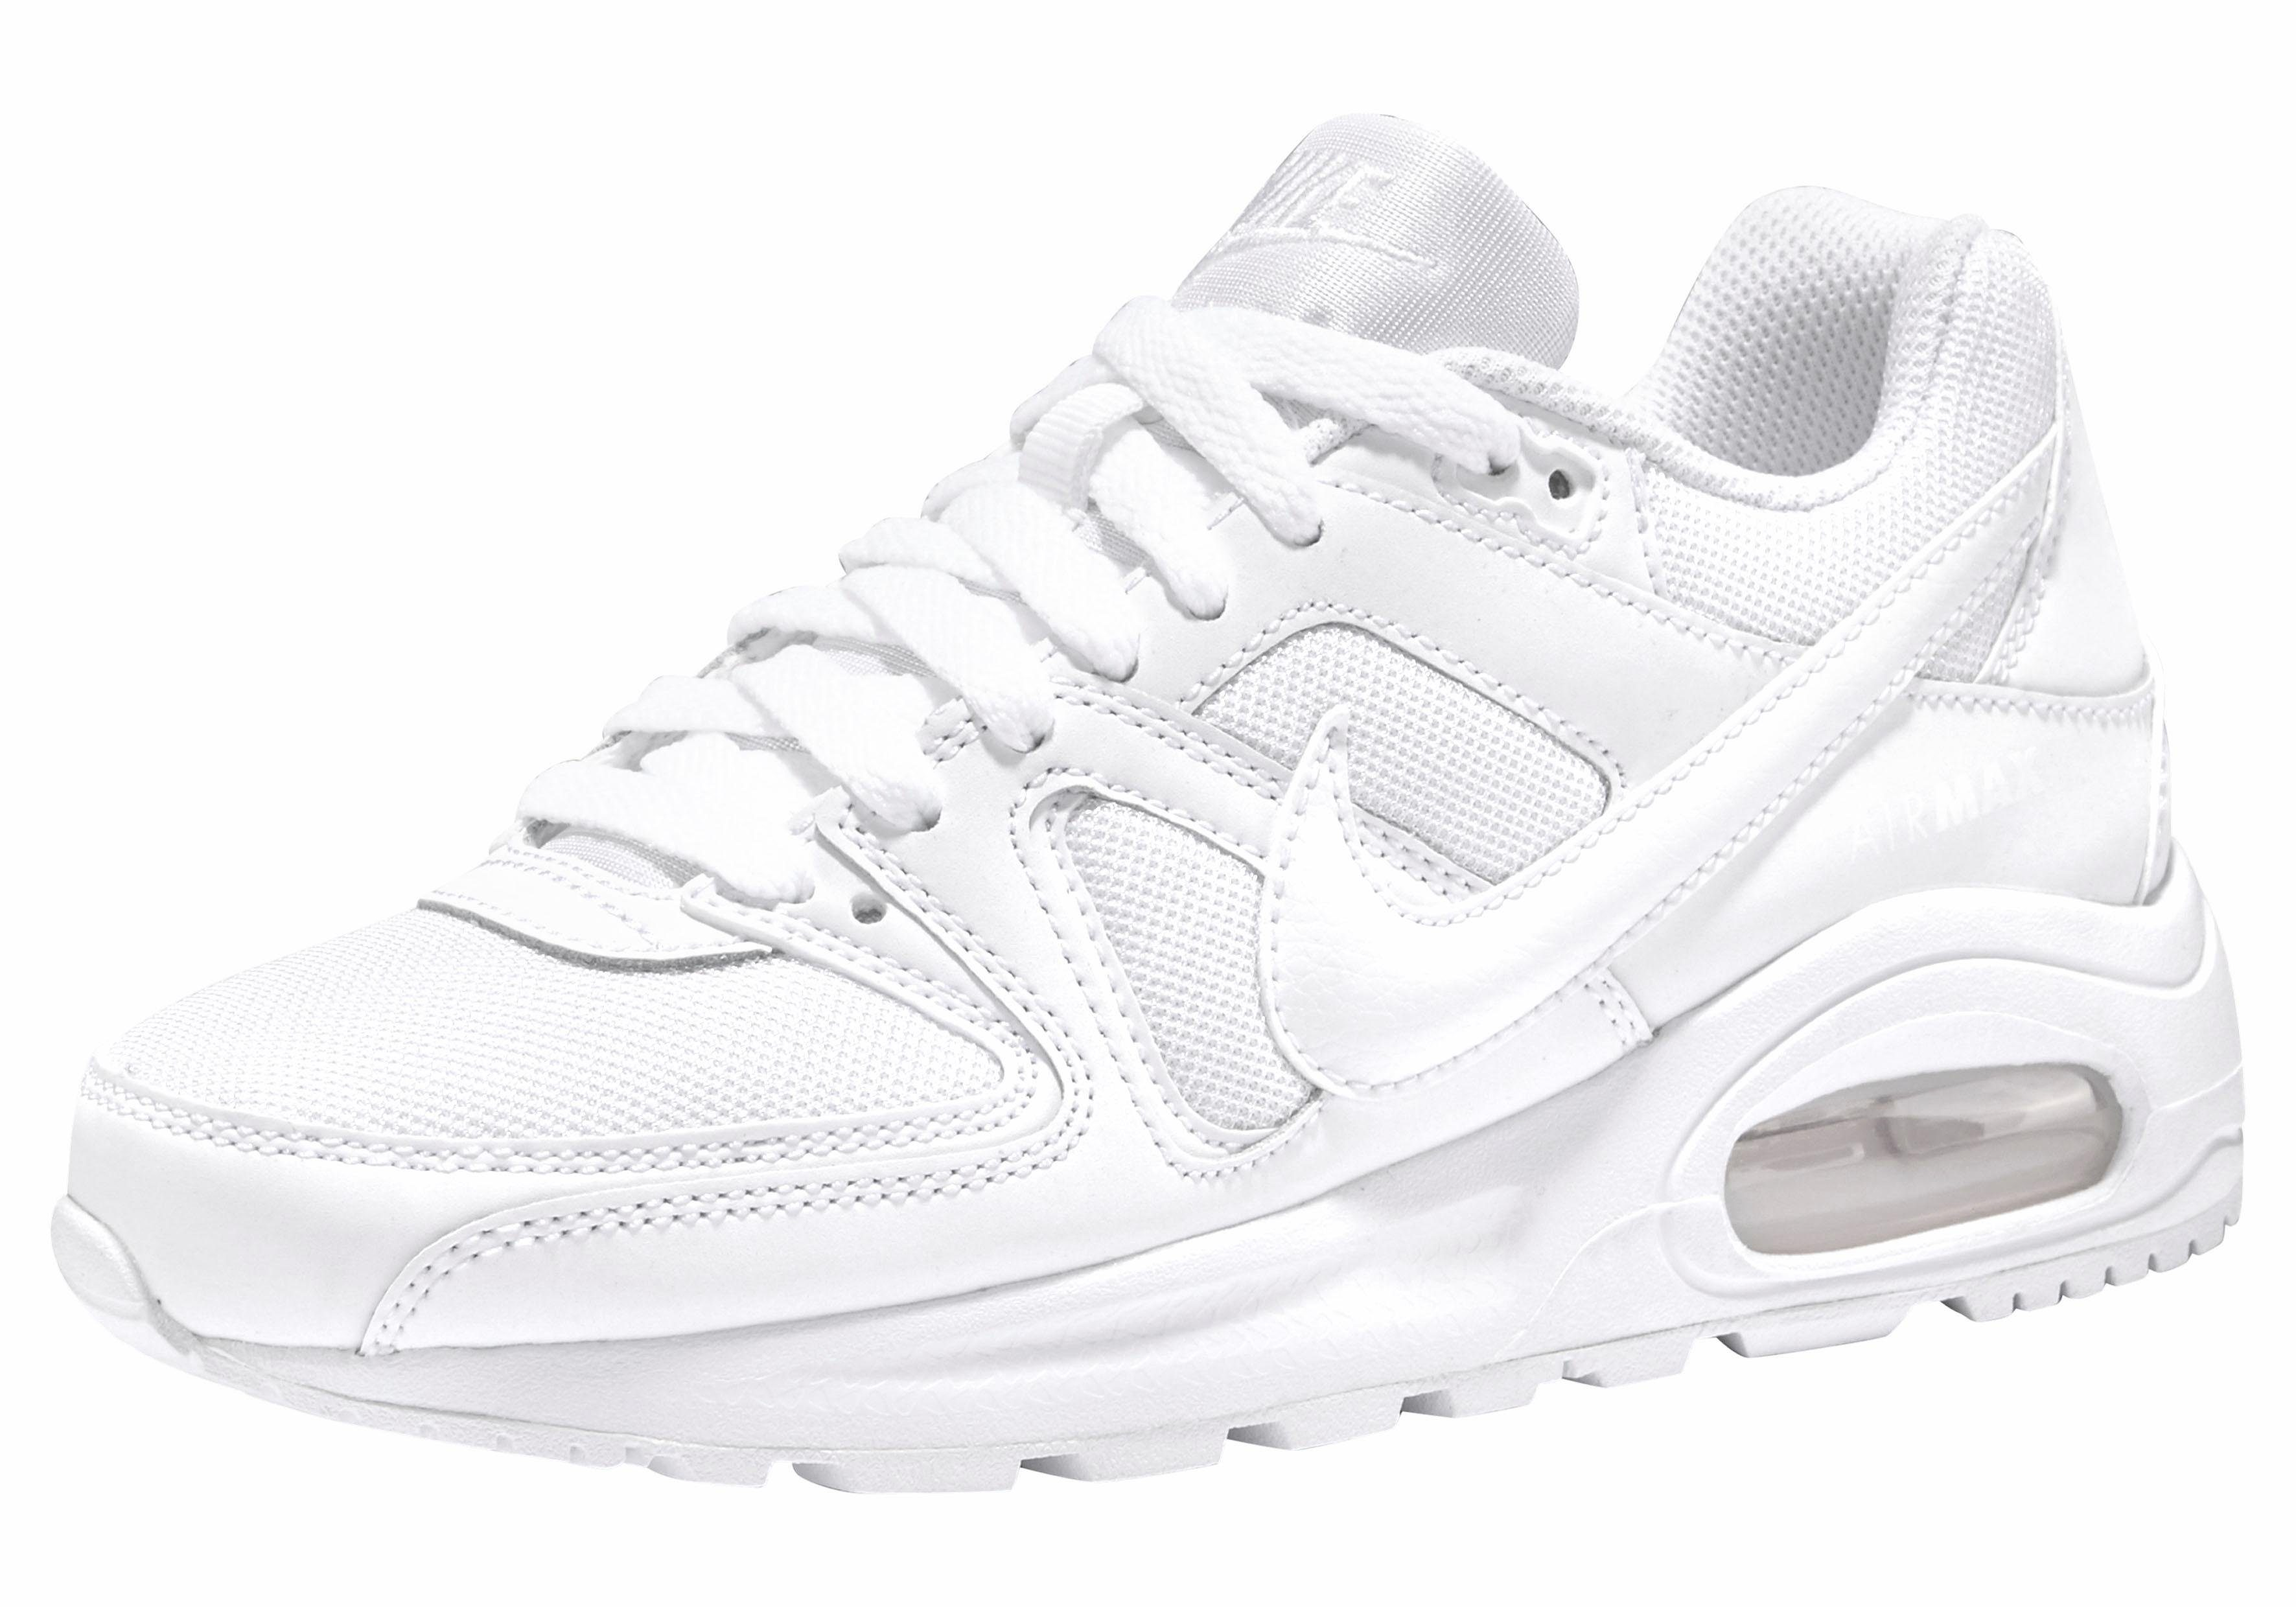 sneakers »Air Max Command Flex«